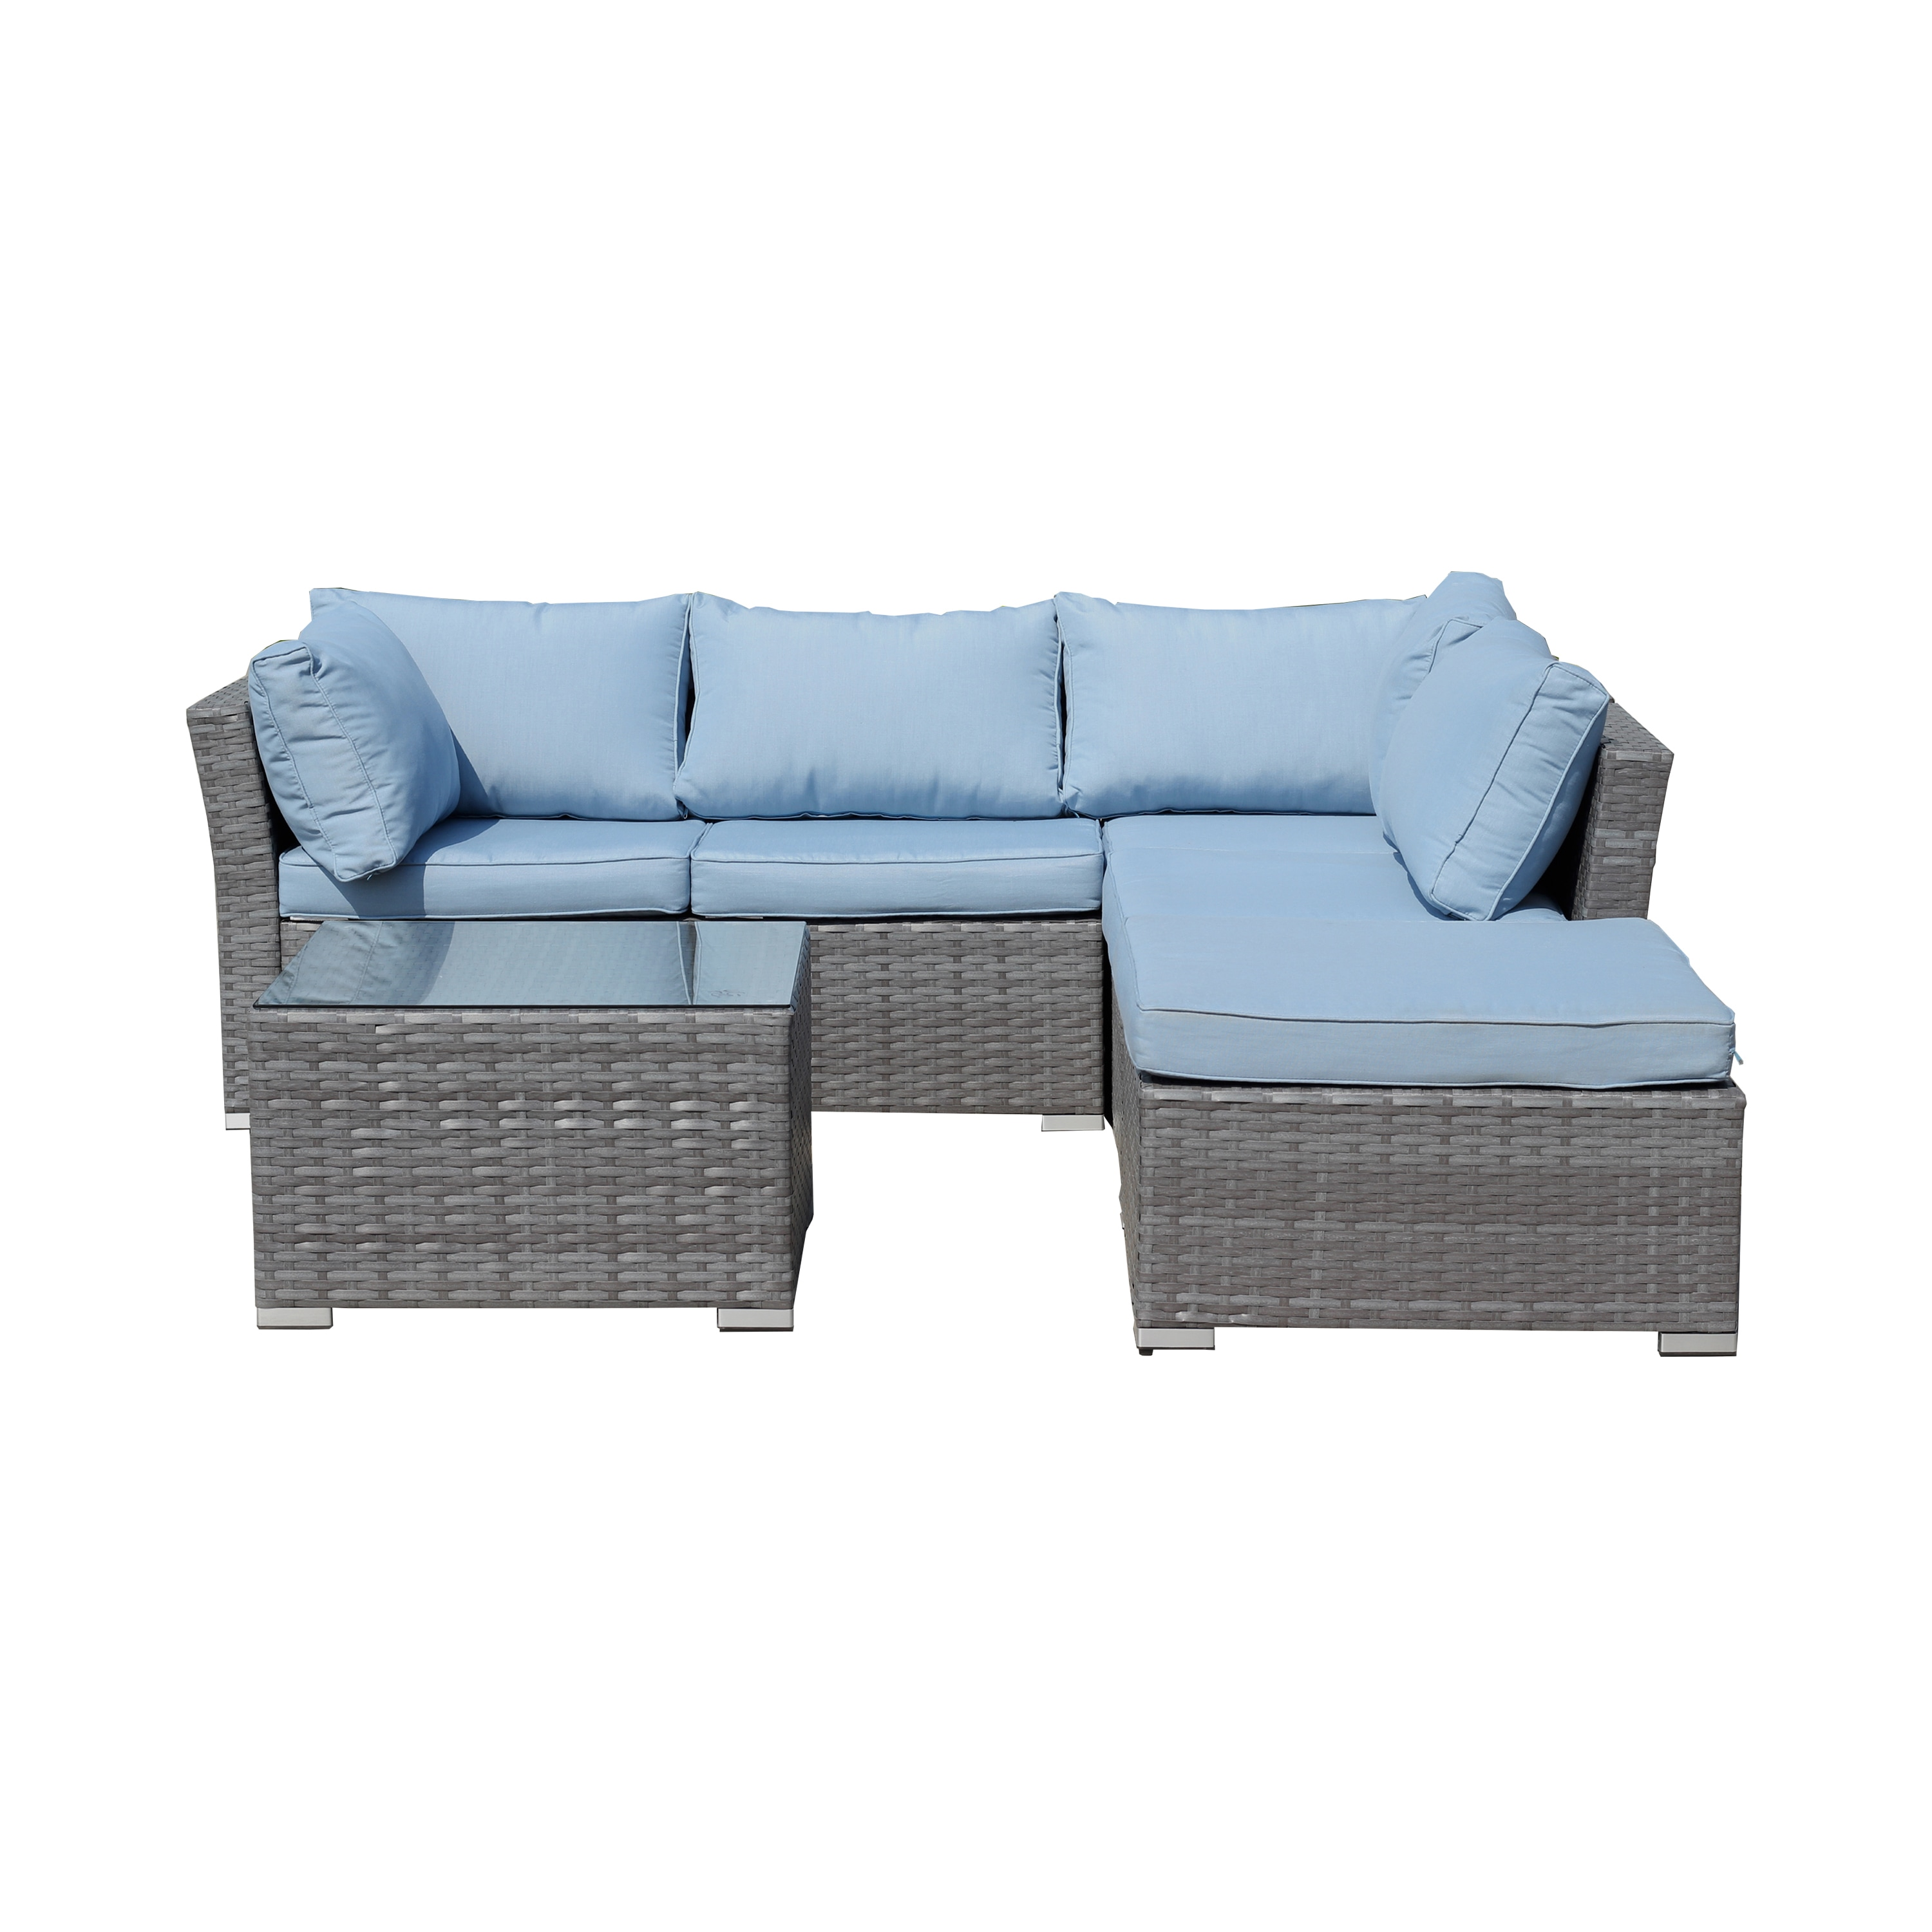 Shop Jicaro 5 Piece Outdoor Wicker Sectional Sofa Set   Grey Wicker With Light  Blue Cushions   Free Shipping Today   Overstock.com   14679492